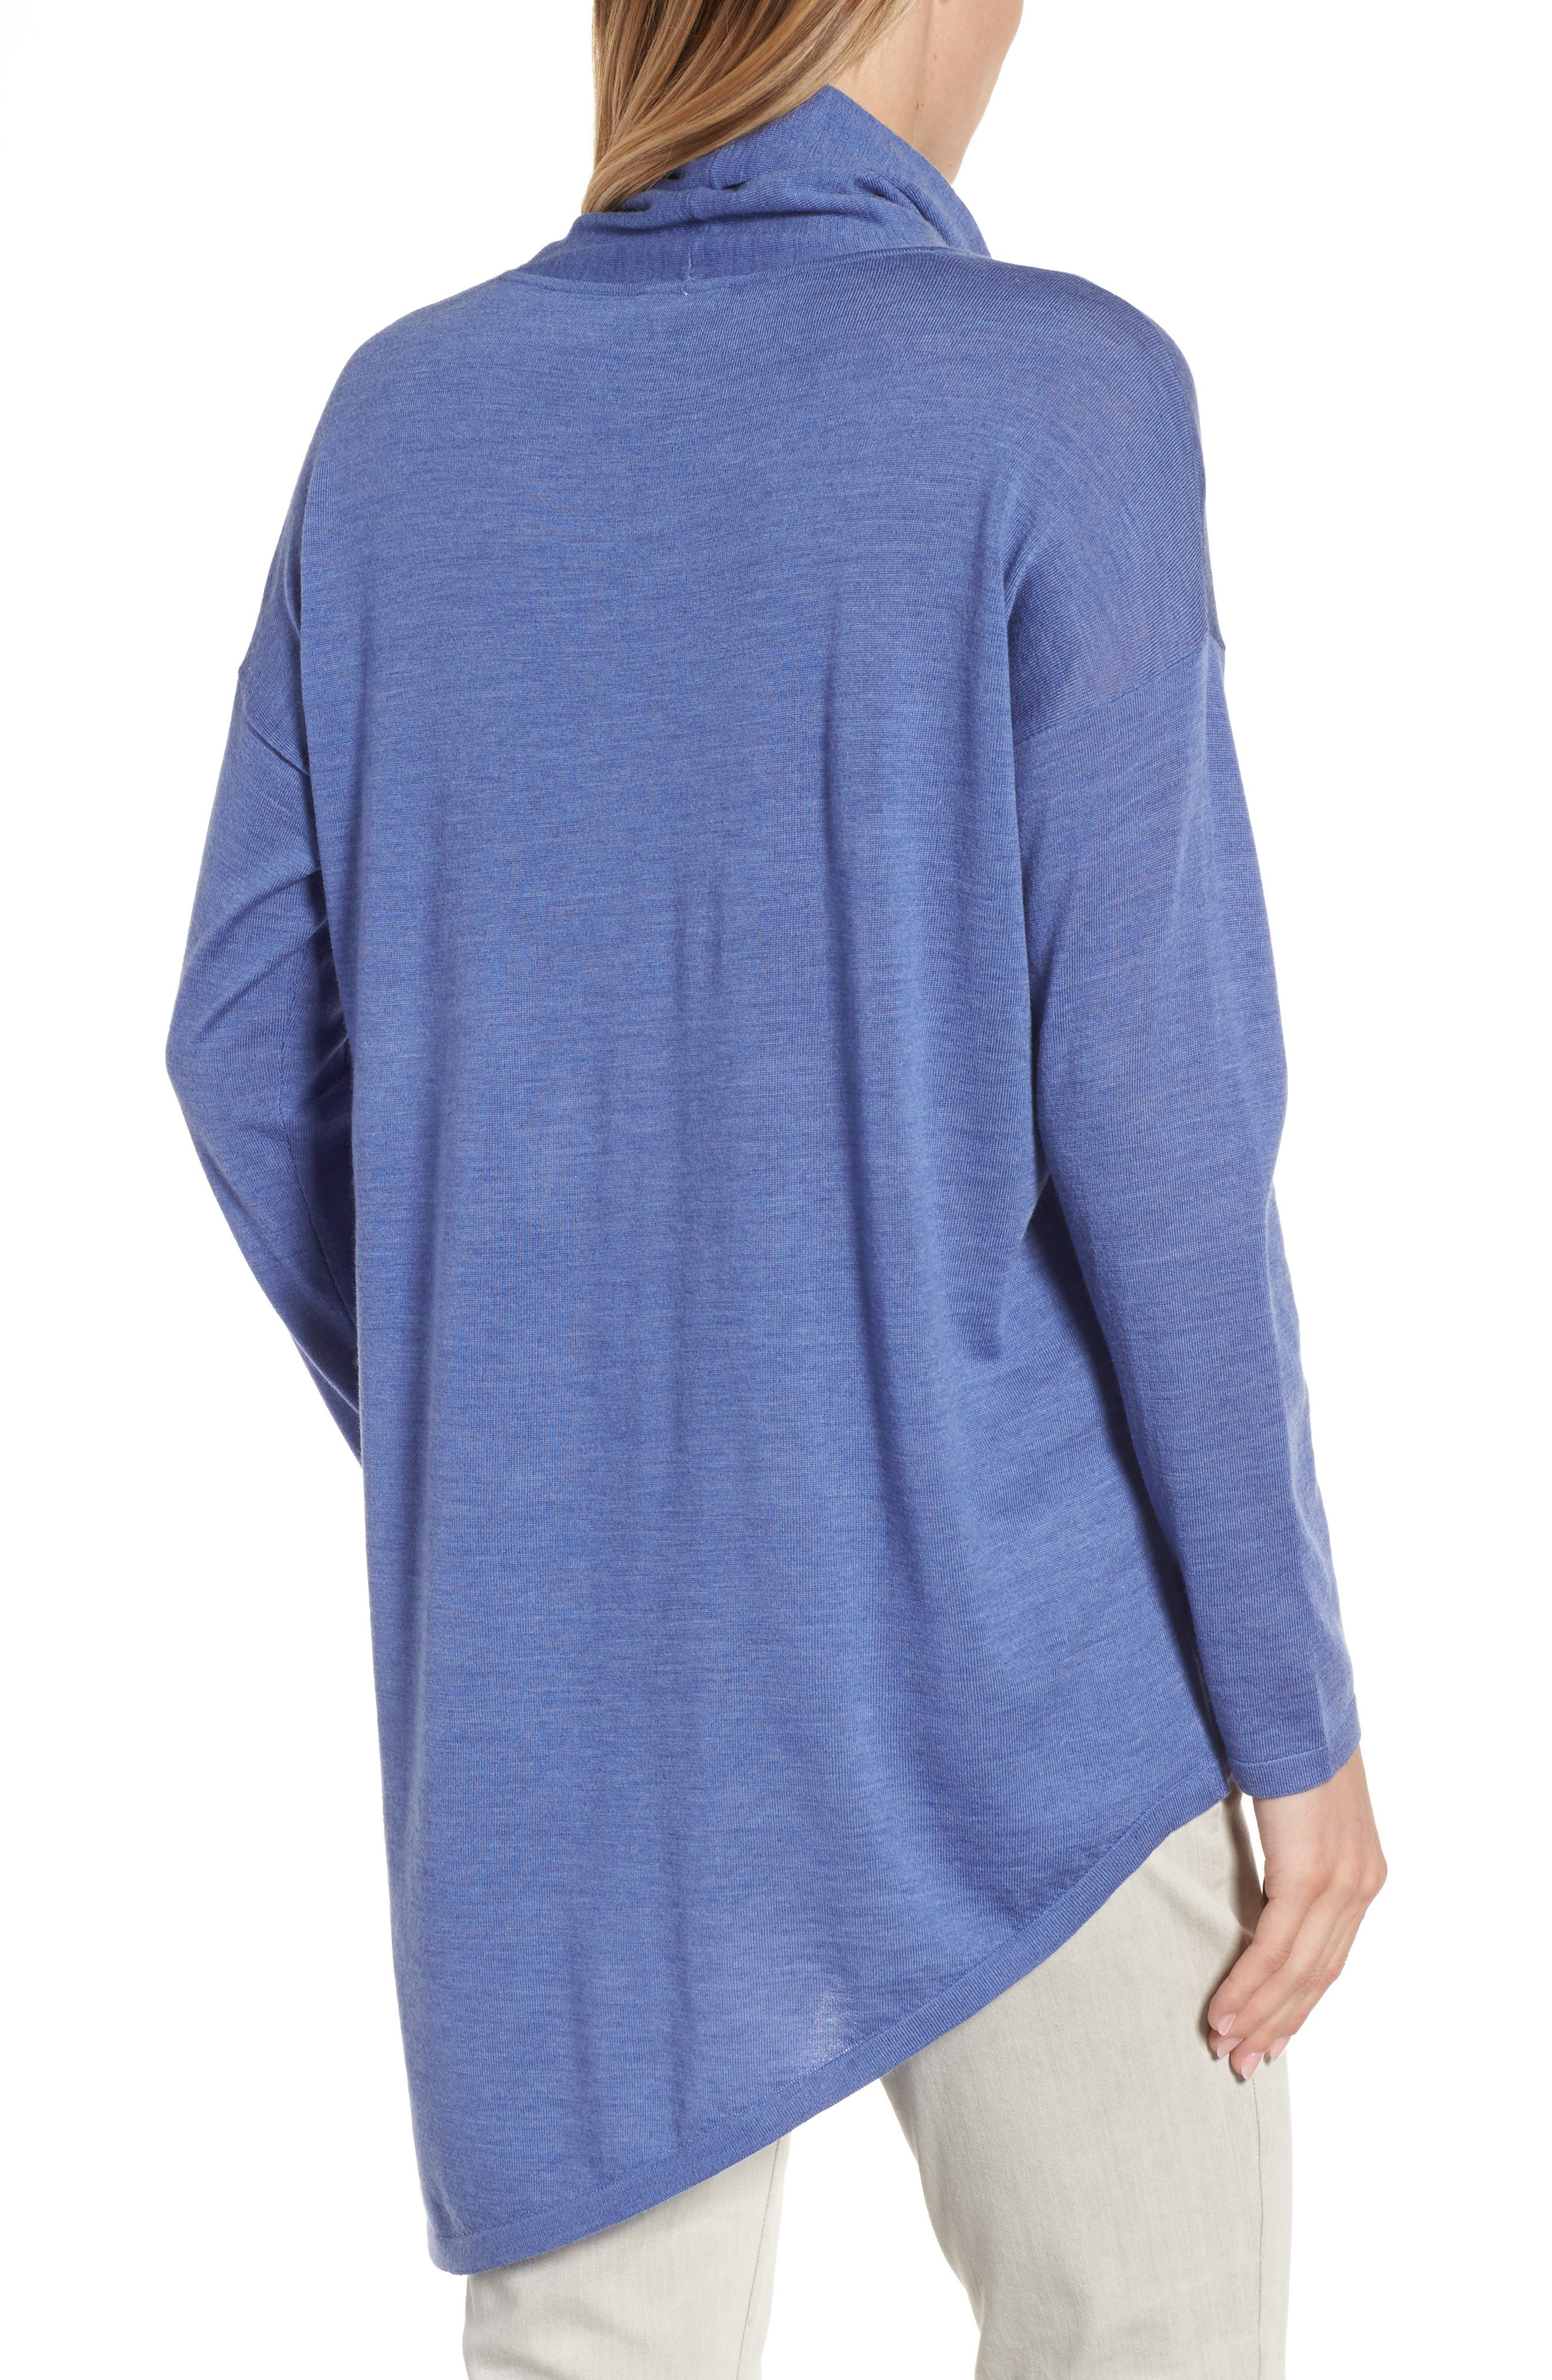 Asymmetrical Merino Wool Sweater,                             Alternate thumbnail 2, color,                             Periwinkle